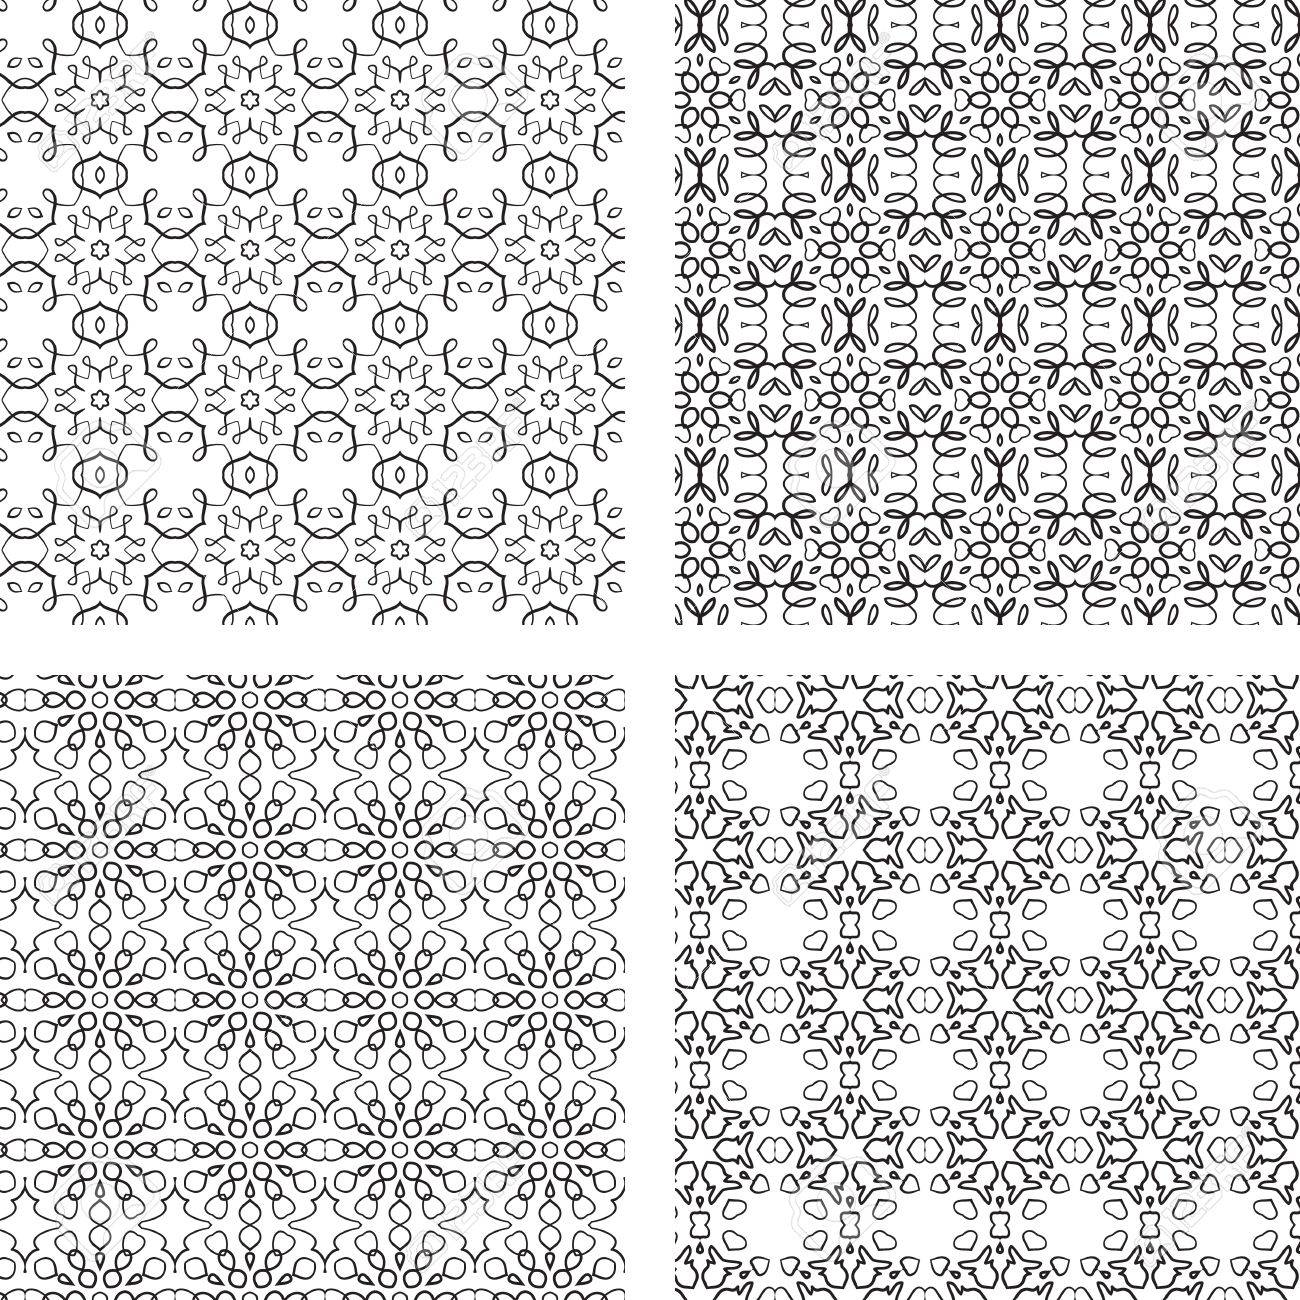 Black and white ornaments - Circular Ornaments Pattern Set Black And White Vector Seamless Stock Vector 21317813